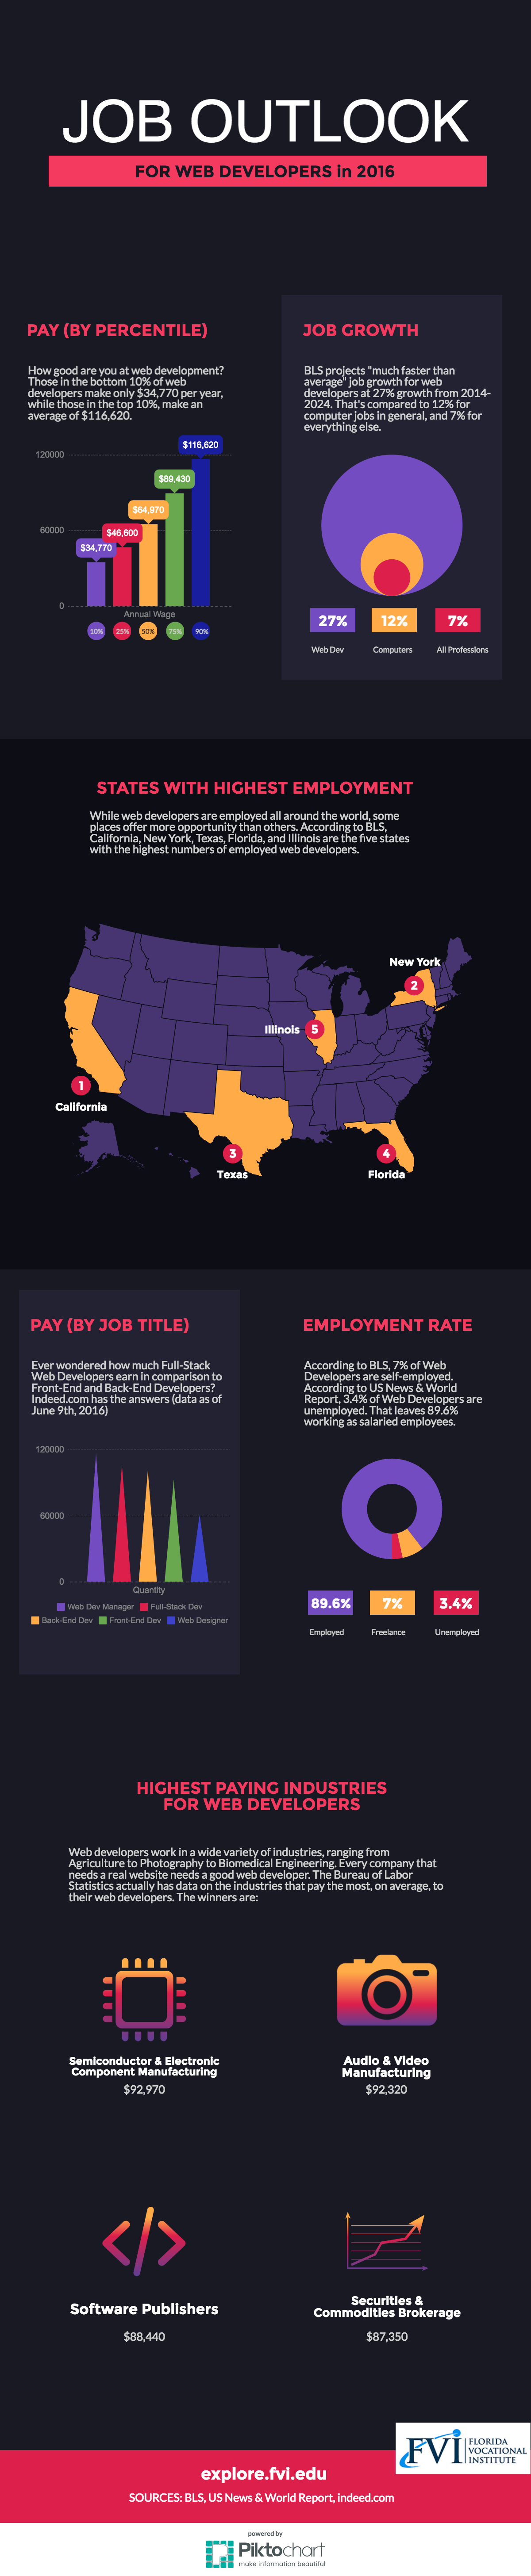 job outlook for web developers in 2016